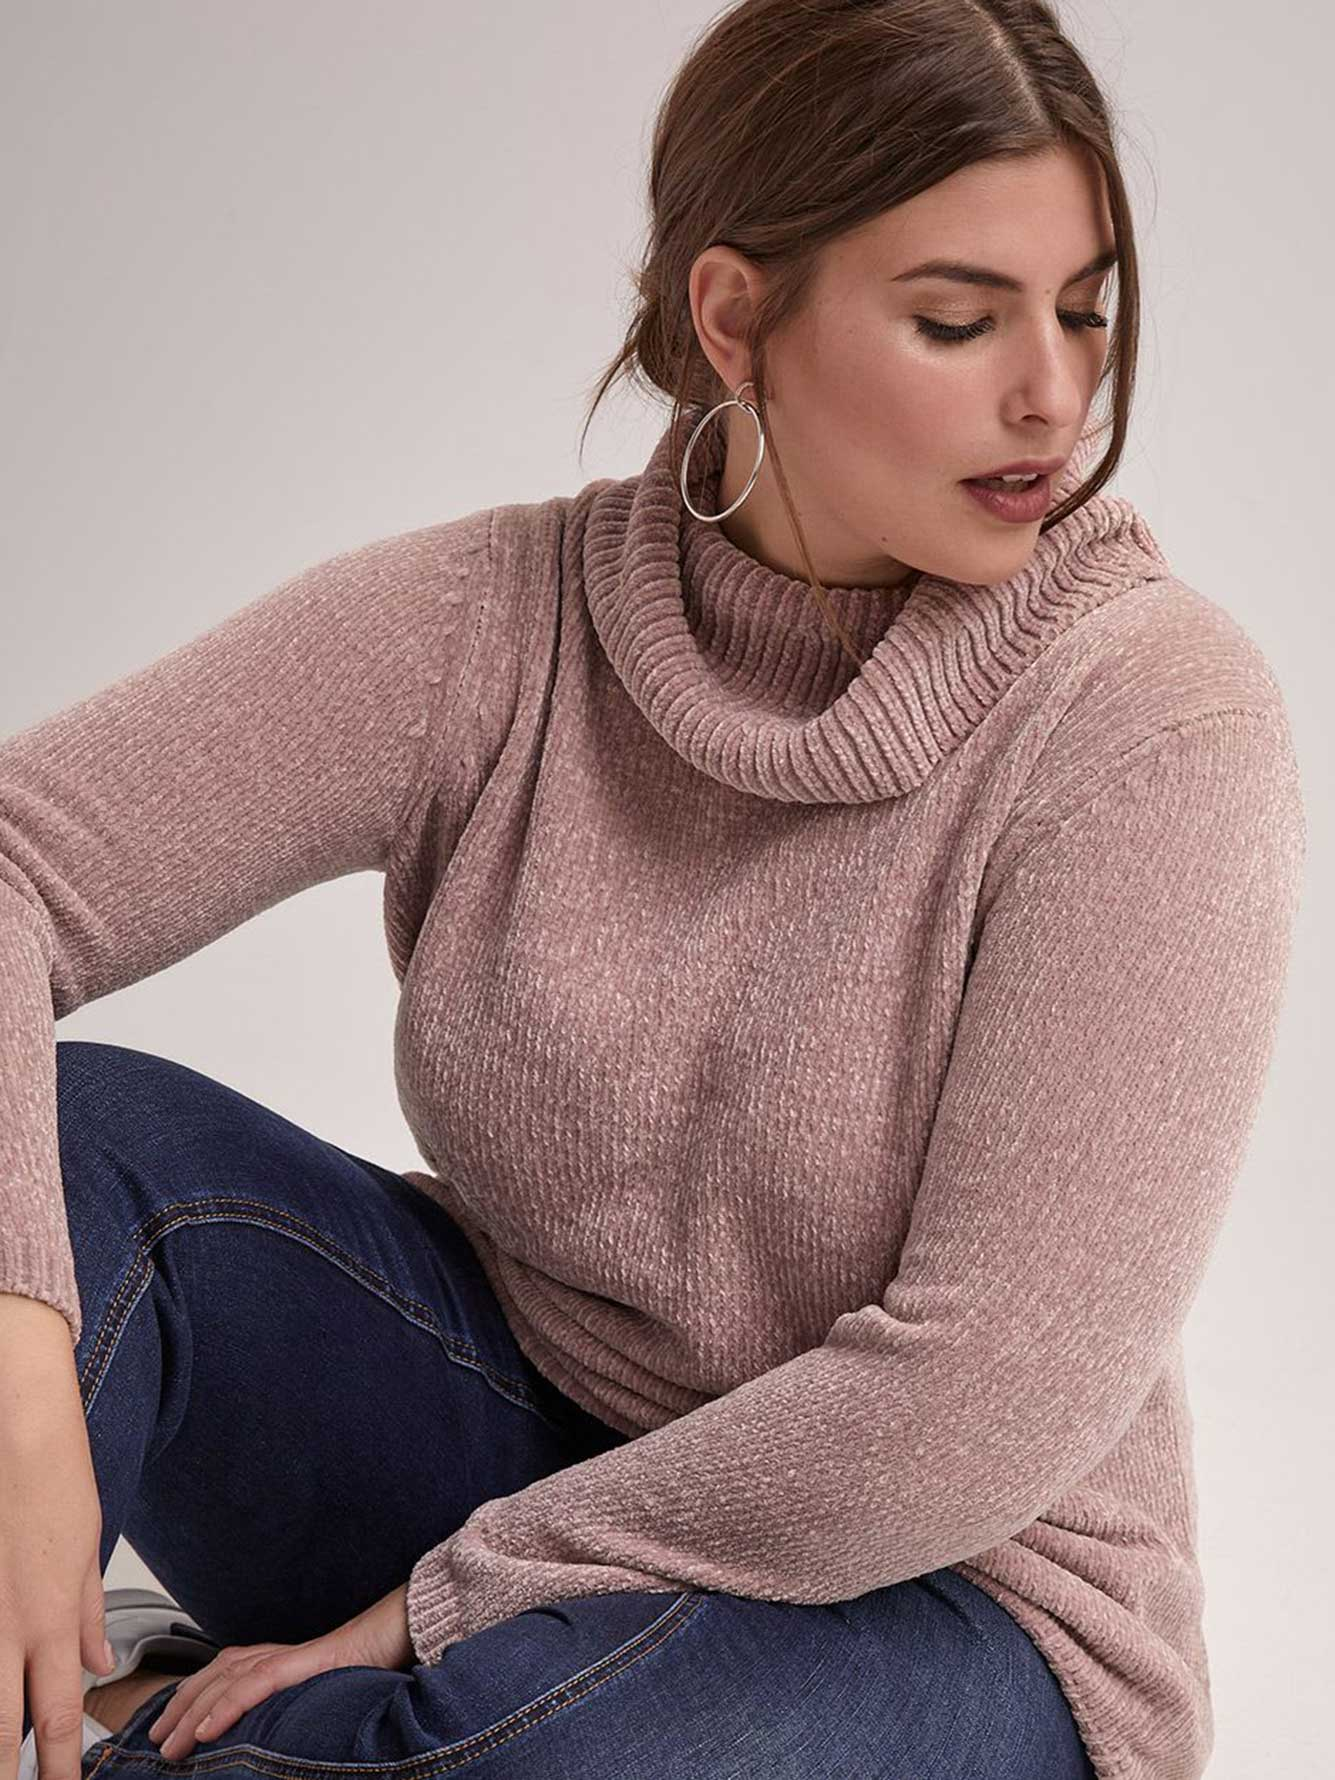 Cowl Neck Sweater with Round Hem - Michel Studio